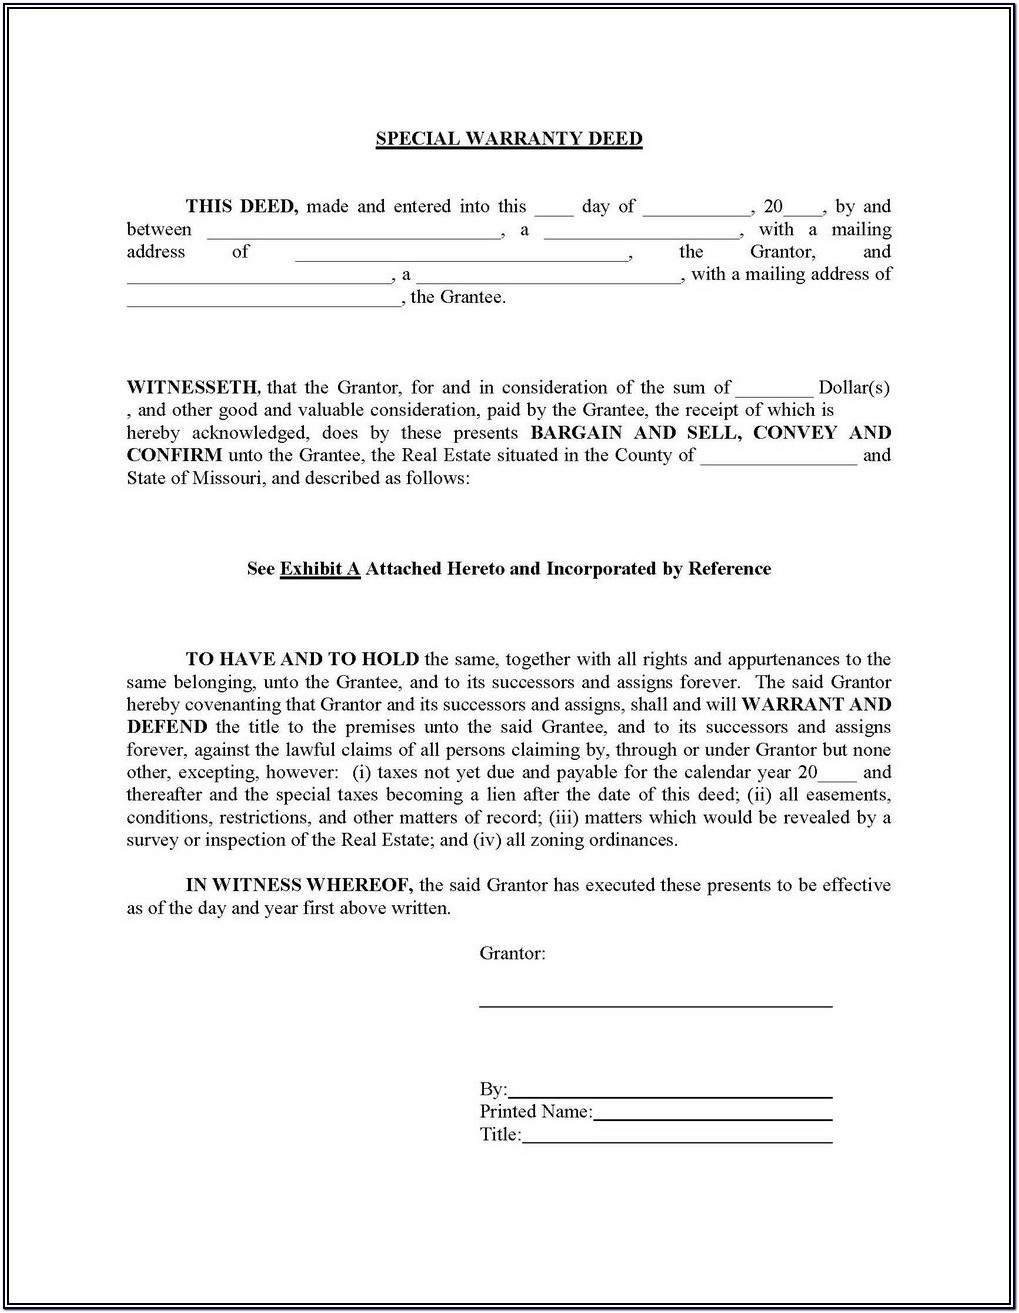 Blank Warranty Deed Form New Mexico